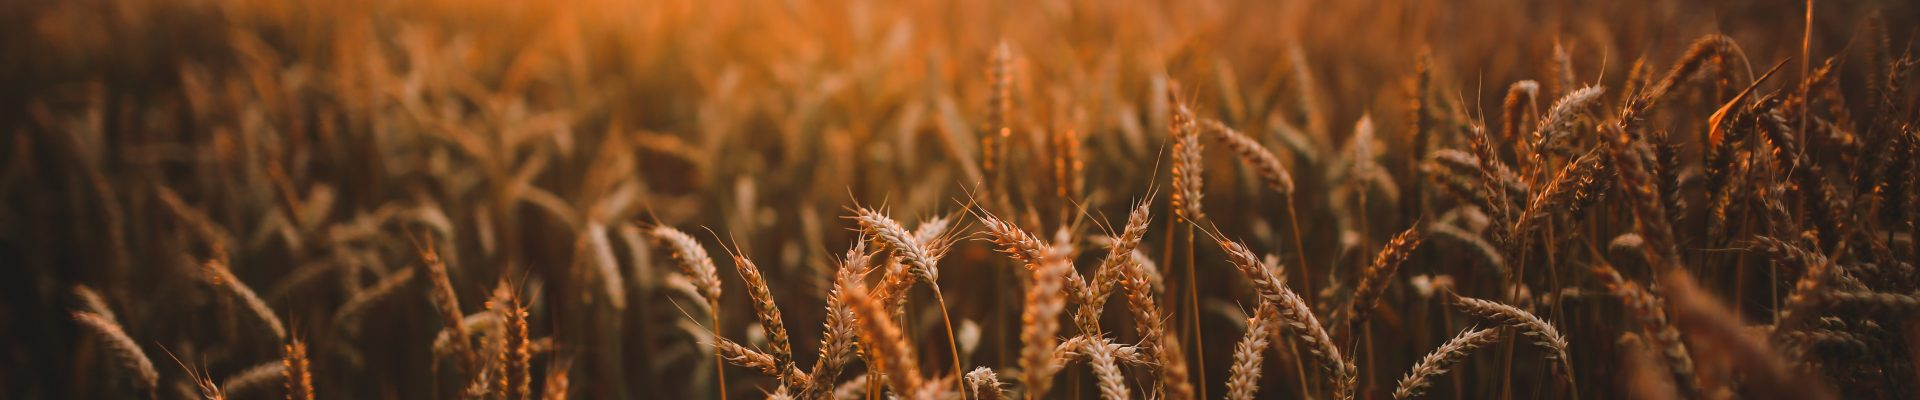 Reach the unreached: The harvest is ready